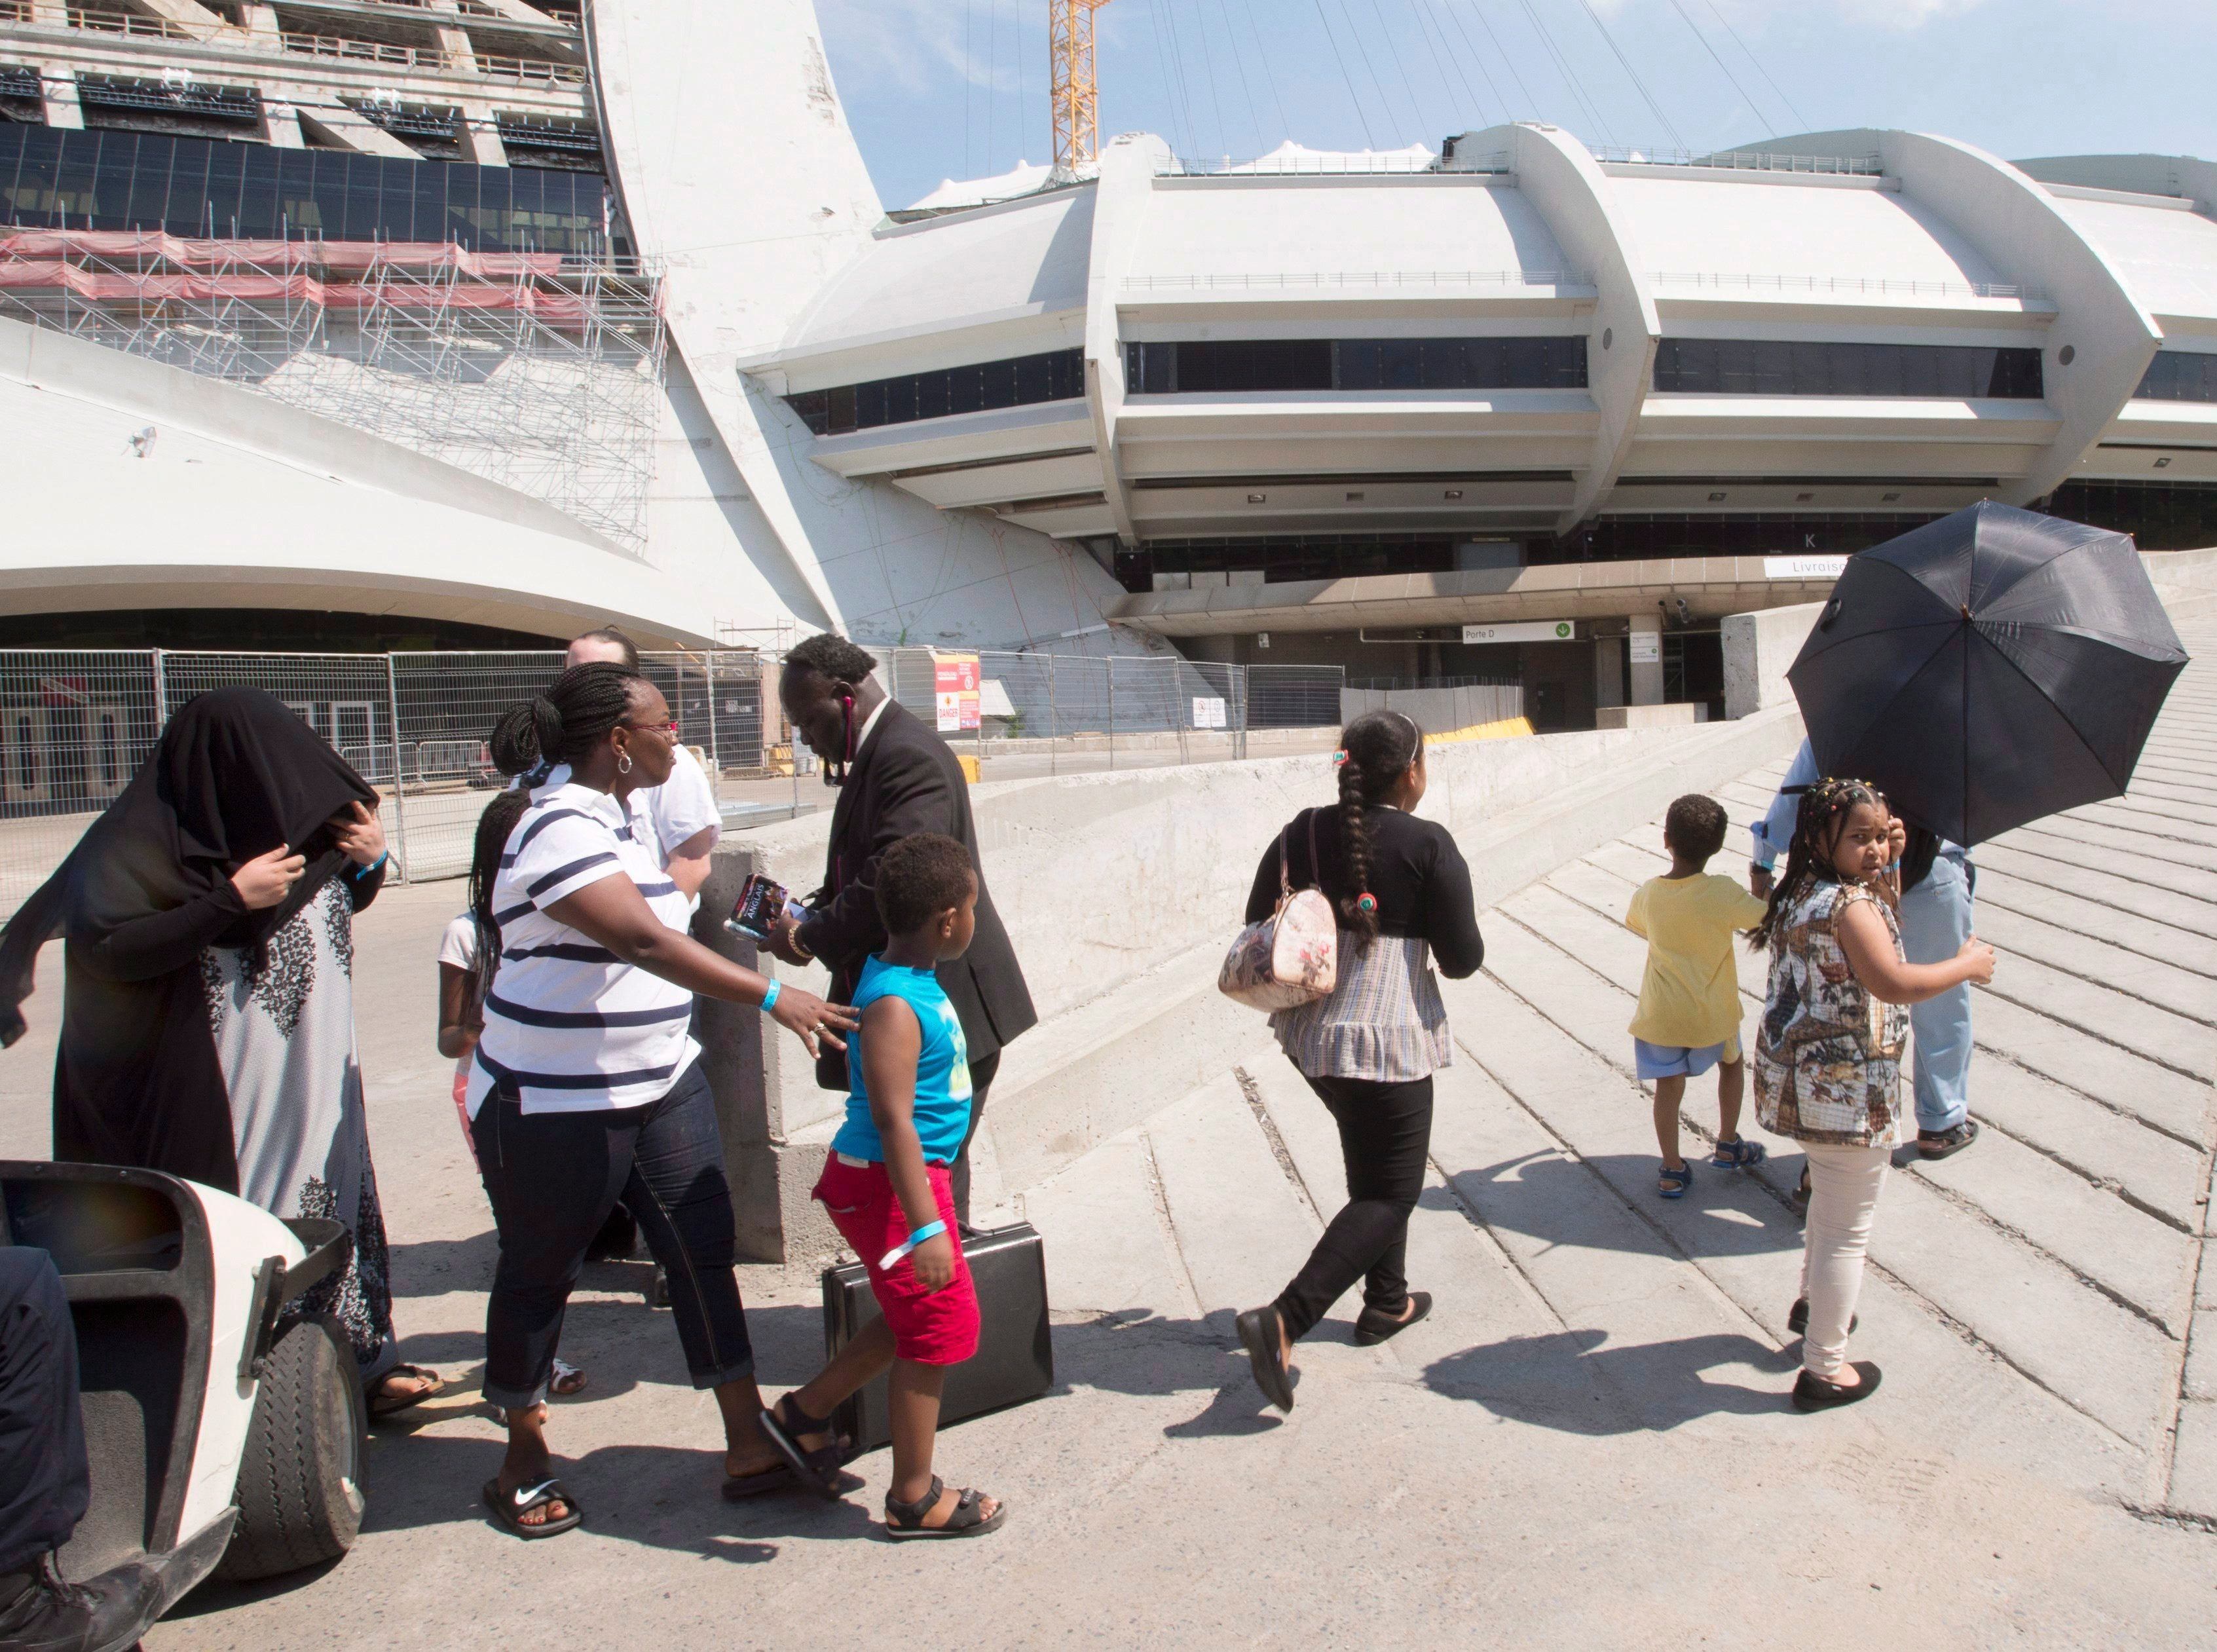 A group of asylum seekers leave Olympic Stadium to go for a walk, in Montreal on Wednesday, August 2, 2017. The stadium is being used as temporary housing to deal with the influx of asylum seekers arriving from the United States. THE CANADIAN PRESS/Ryan Remiorz